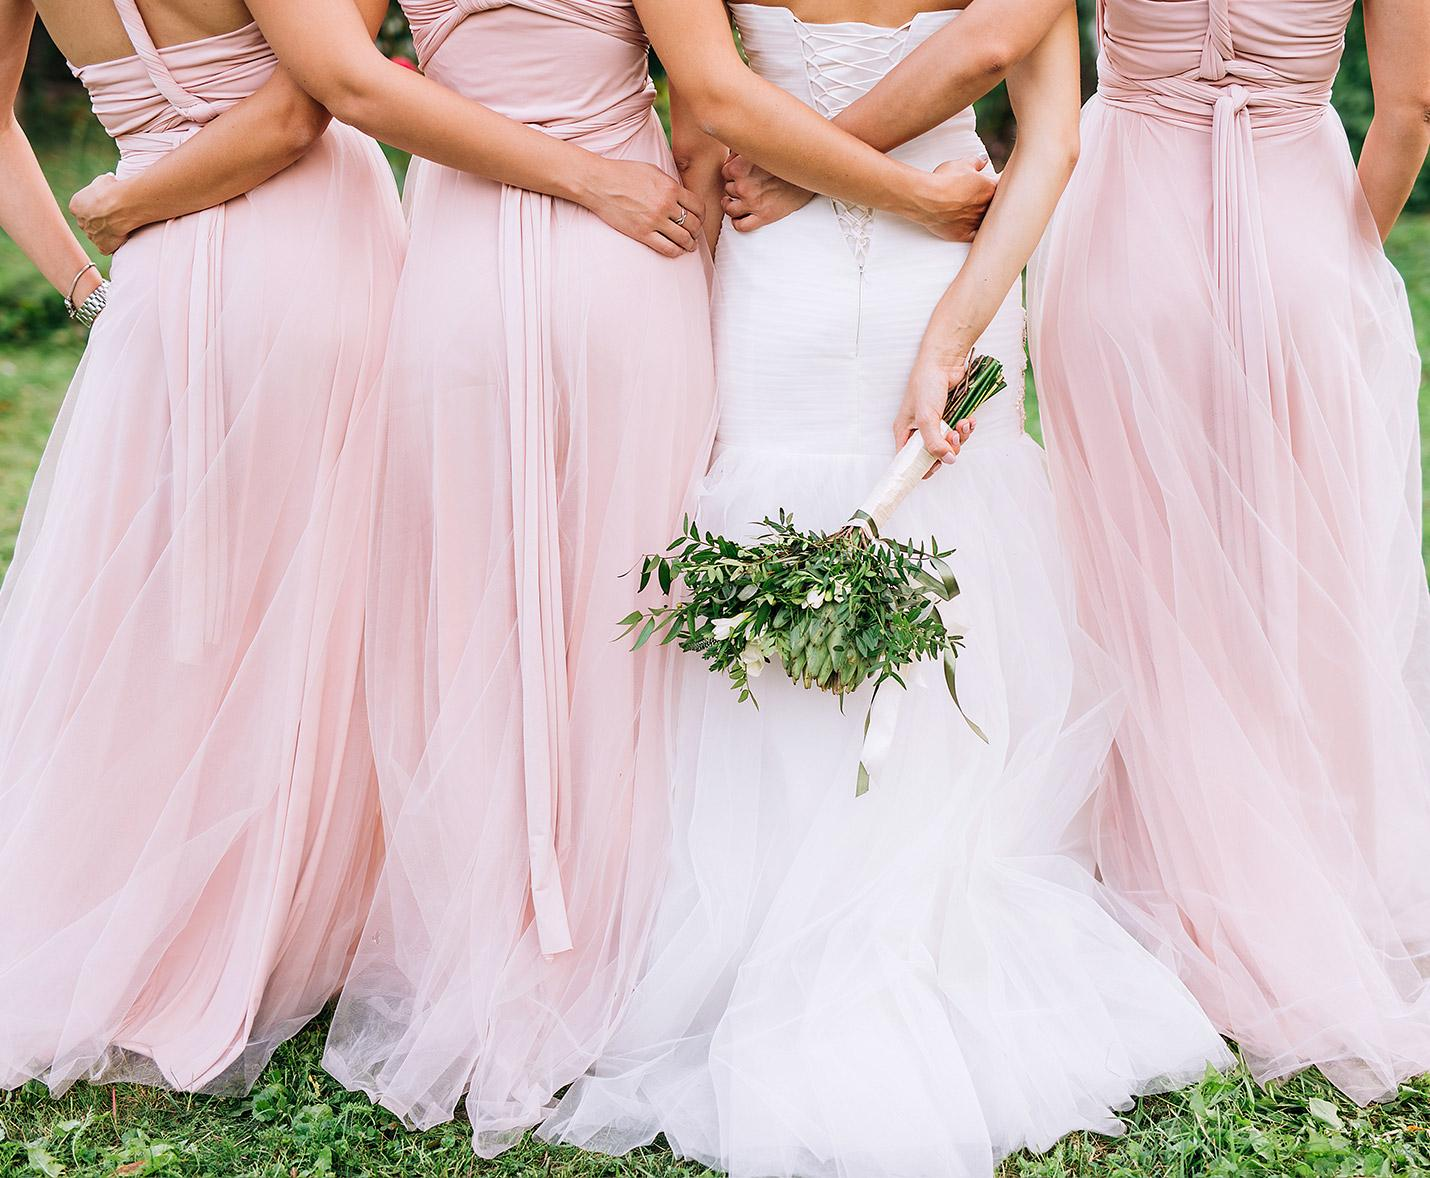 A bride and her bridesmaid with their backs to the camers